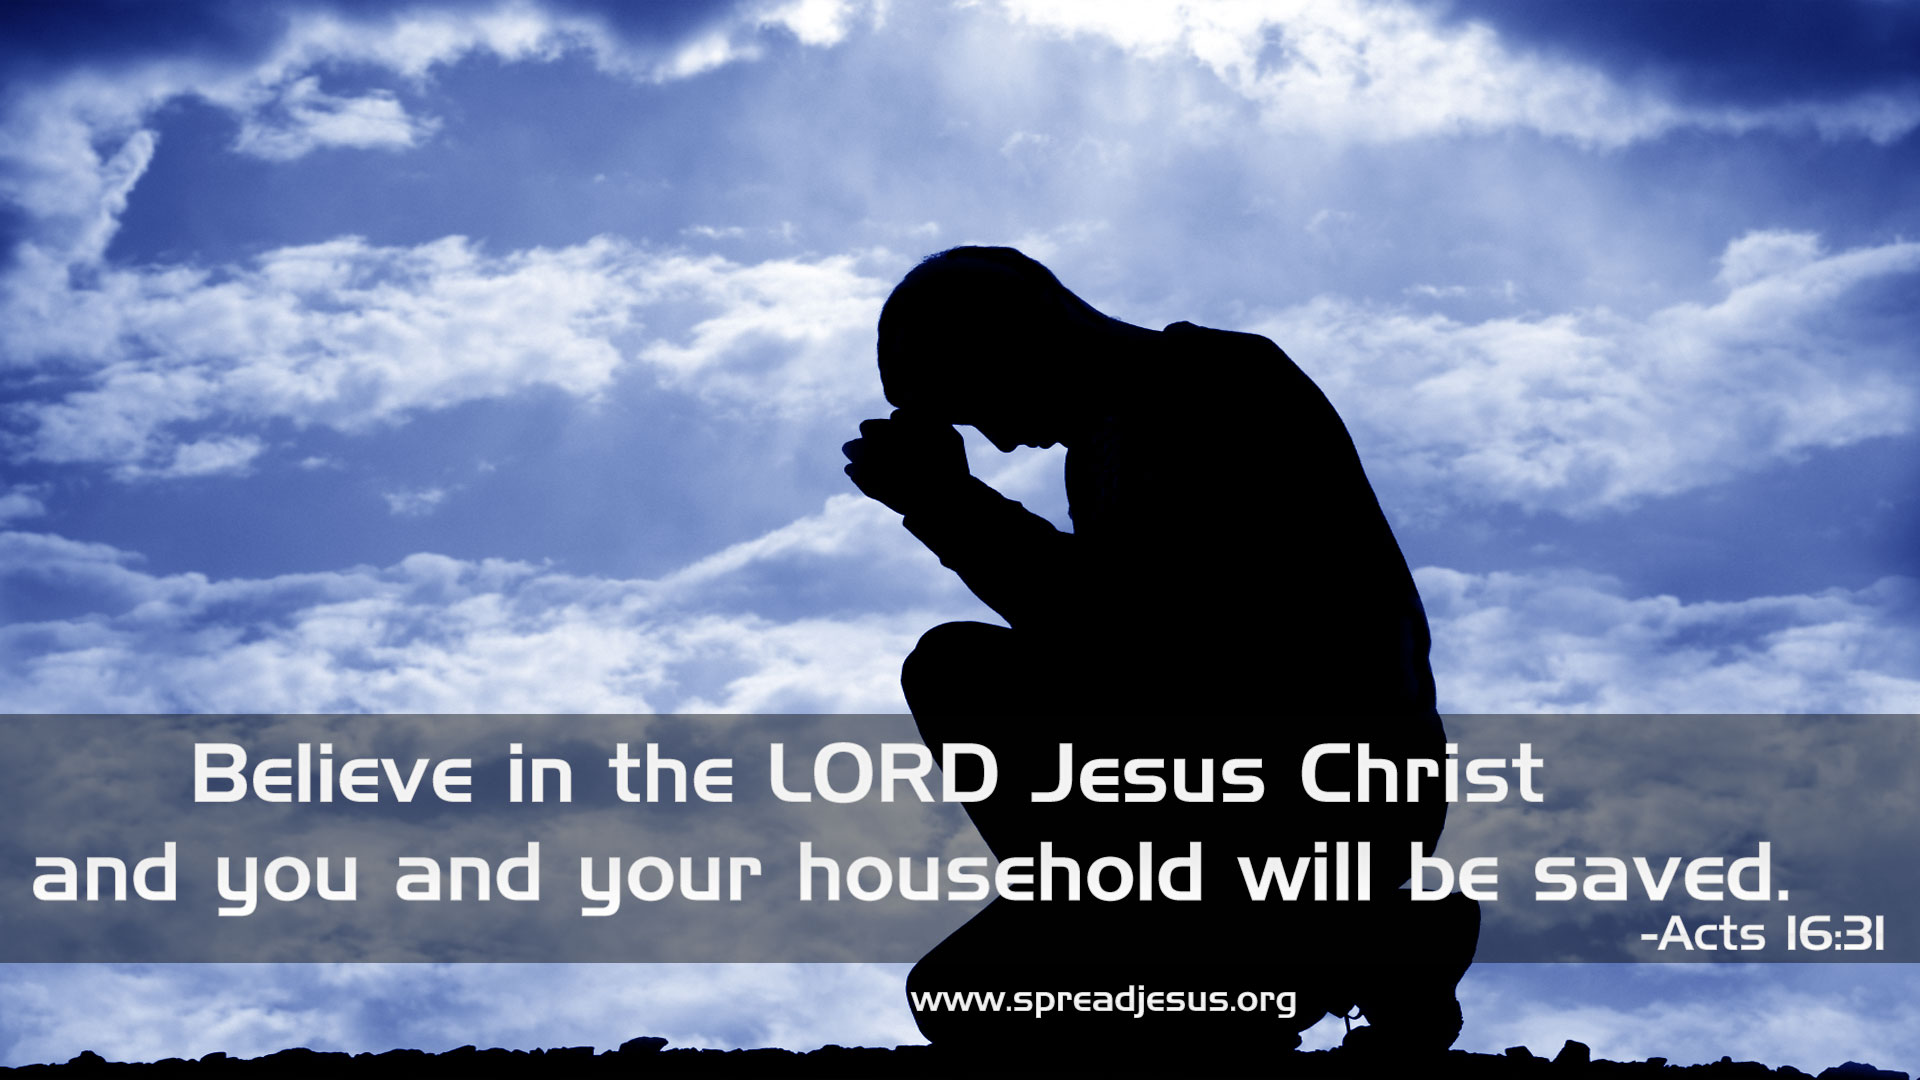 Believe in the LORD Jesus Christ and you and your household will be saved.-Acts 16:31